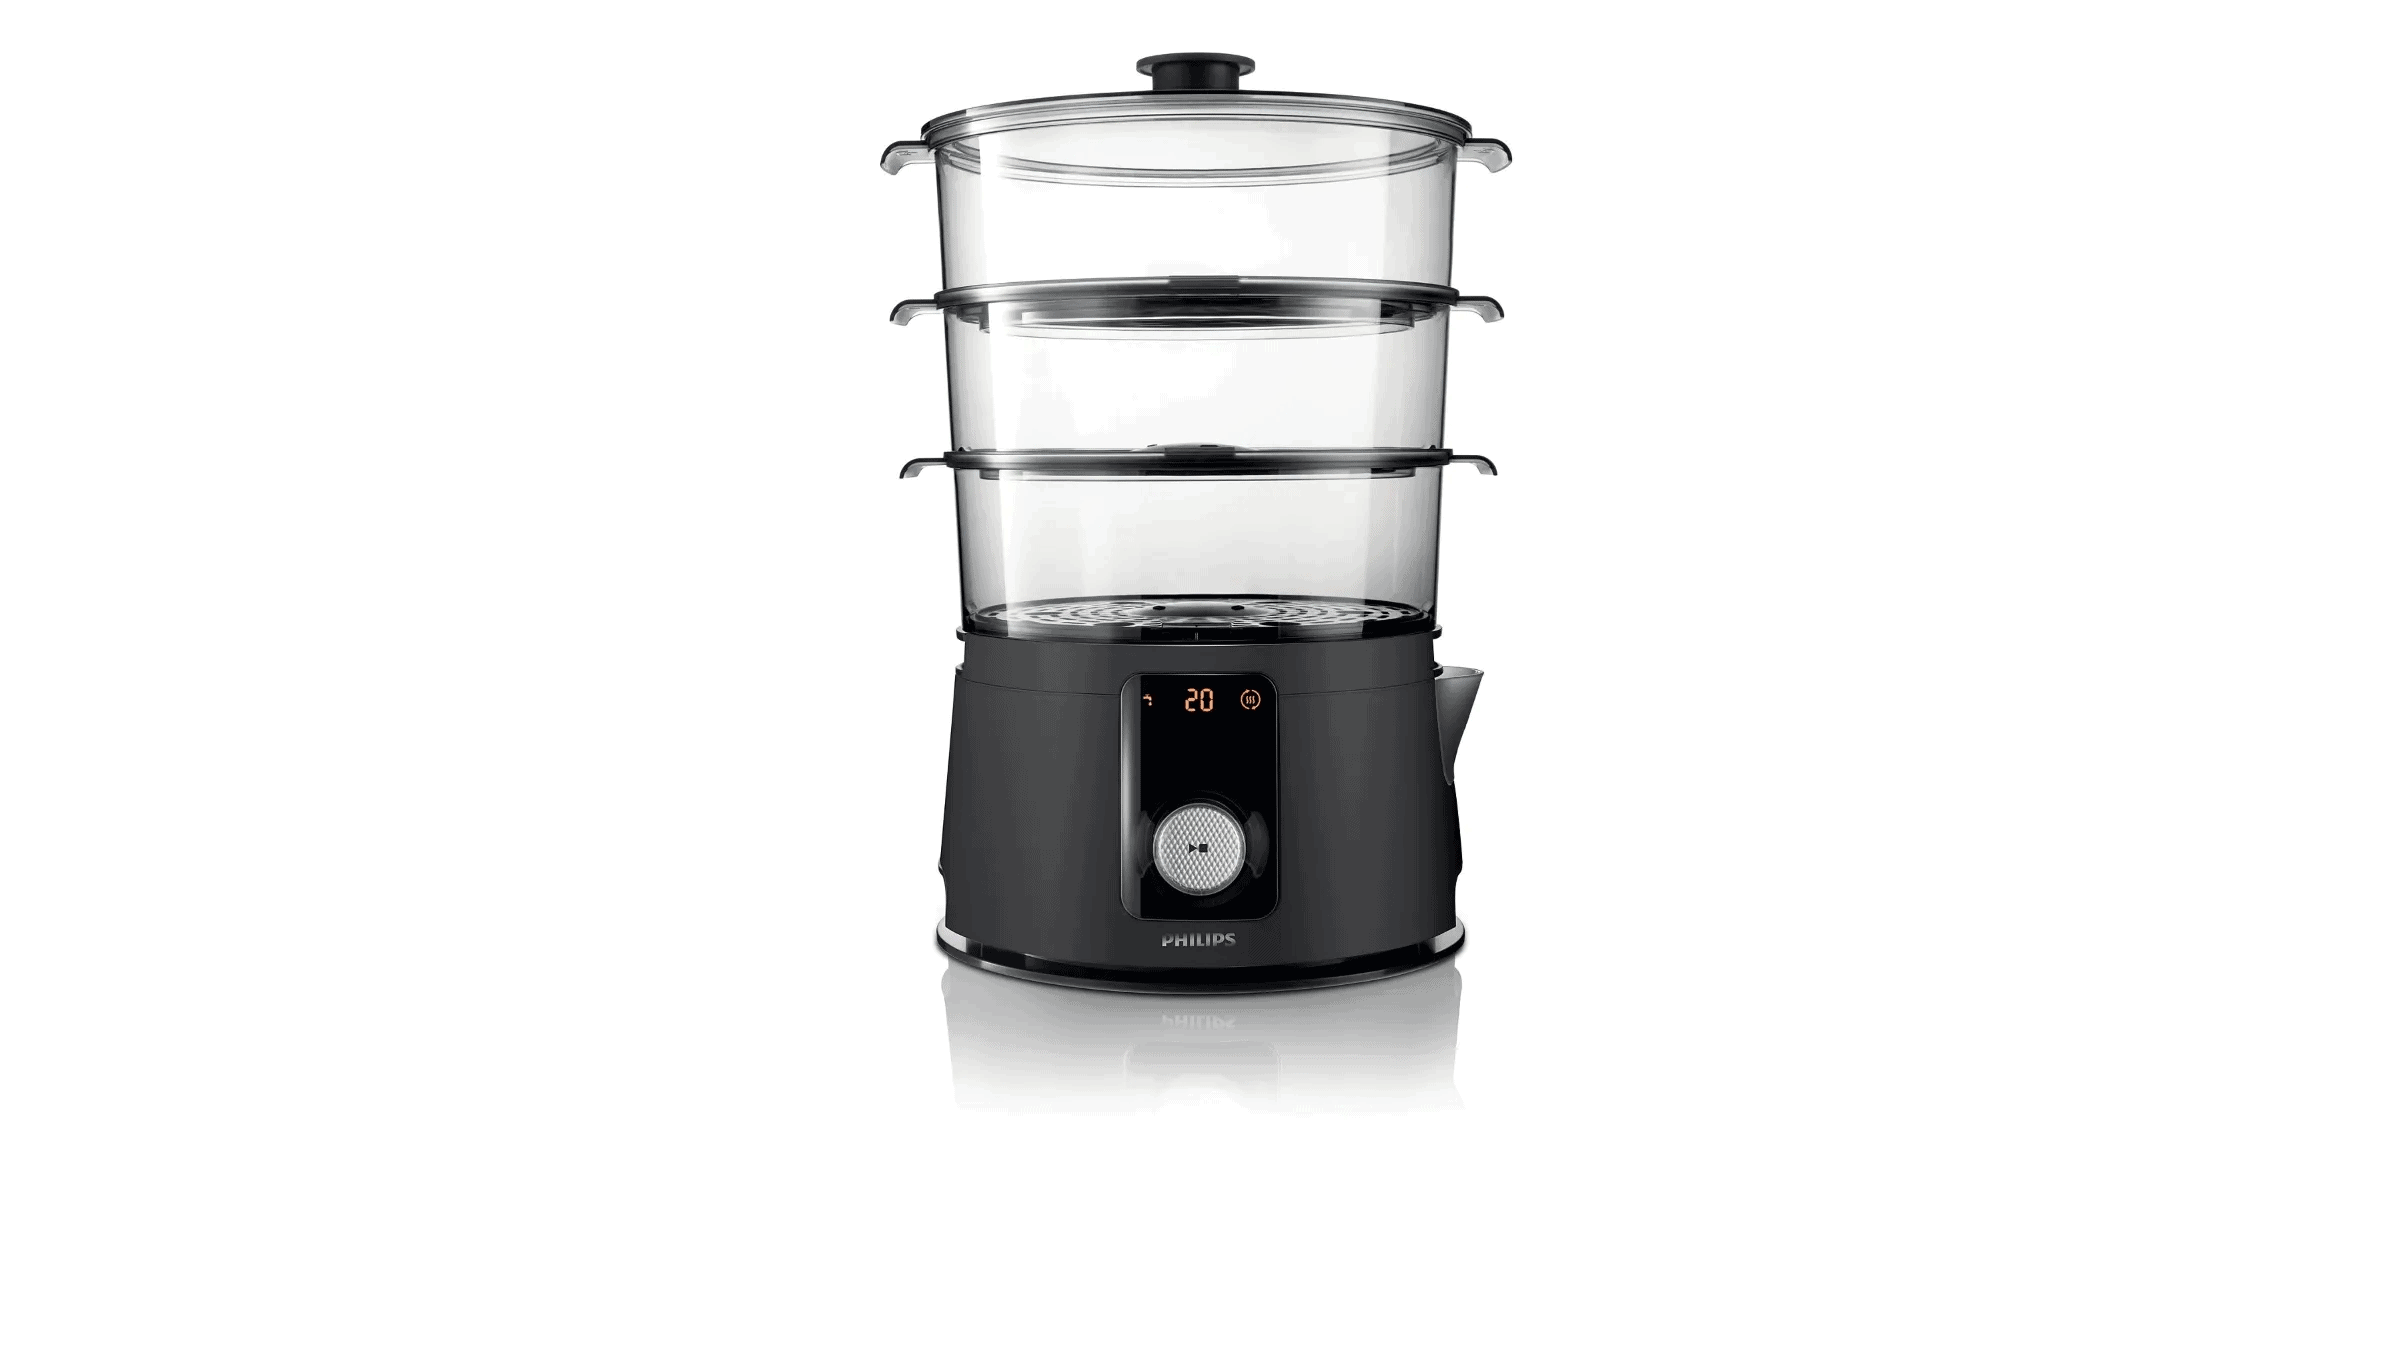 Cheap philips Food Steamer in Singapore and Malaysia